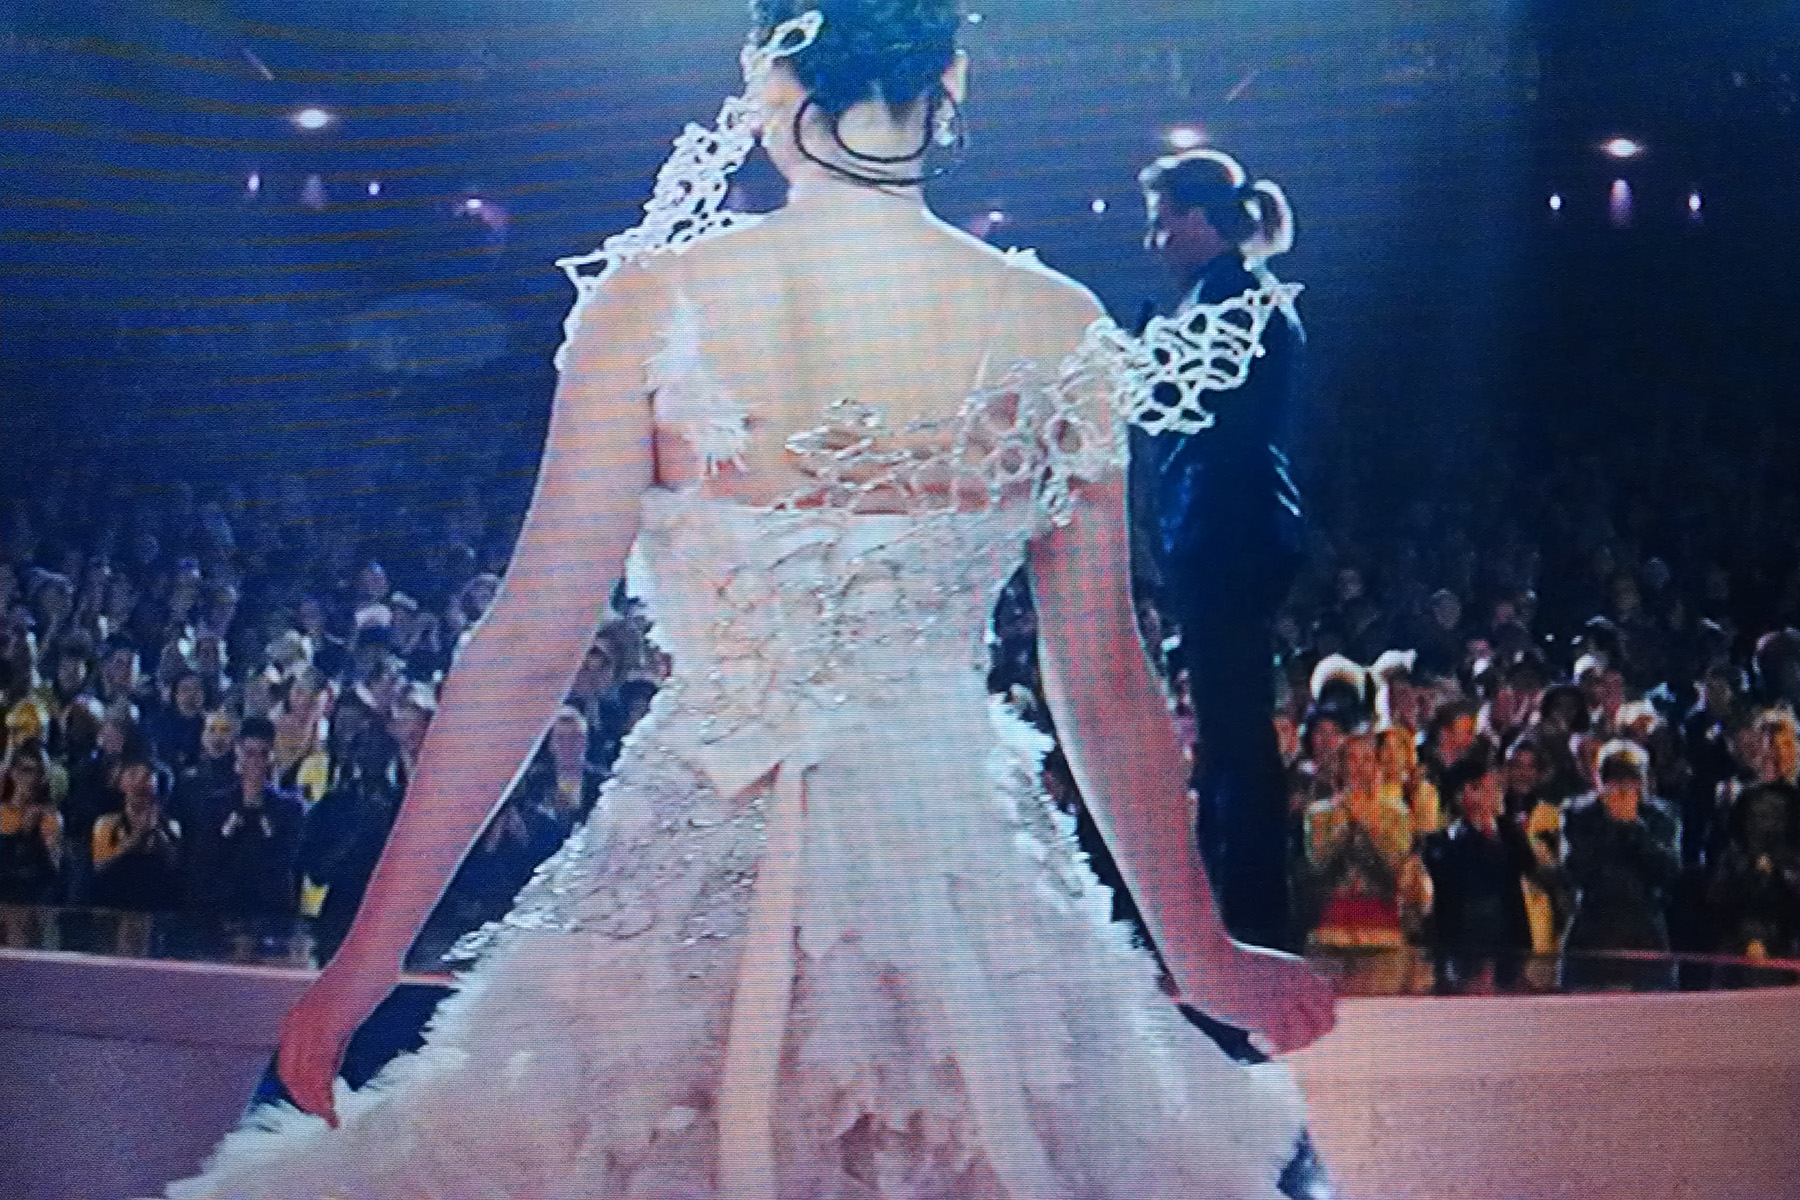 A screen shot from Hunger Games: Catching Fire. Back view of Katniss in her wedding gown.